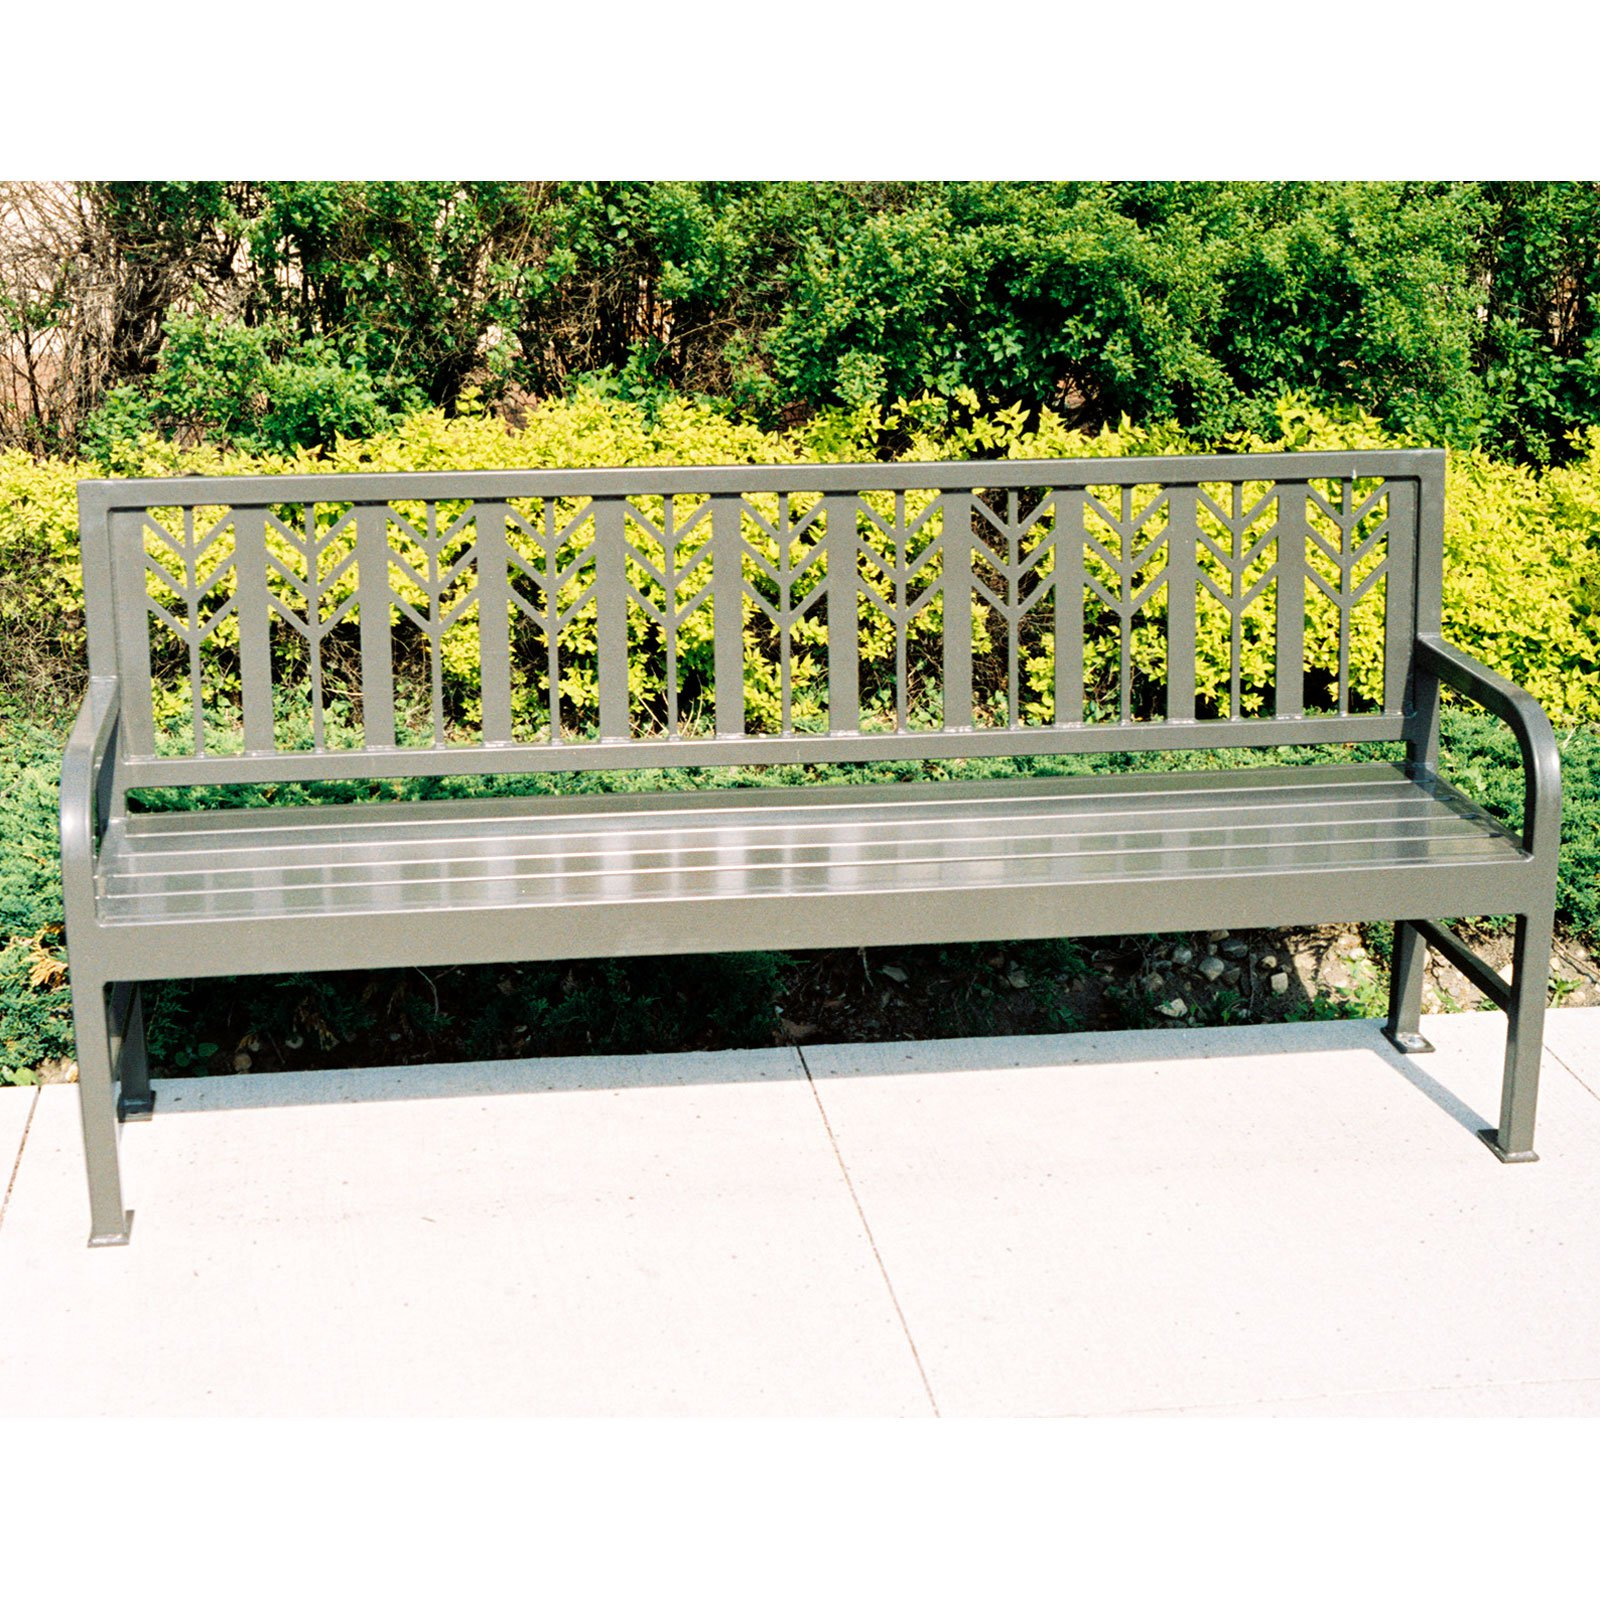 Petersen Mueller Steel Commercial Park Bench